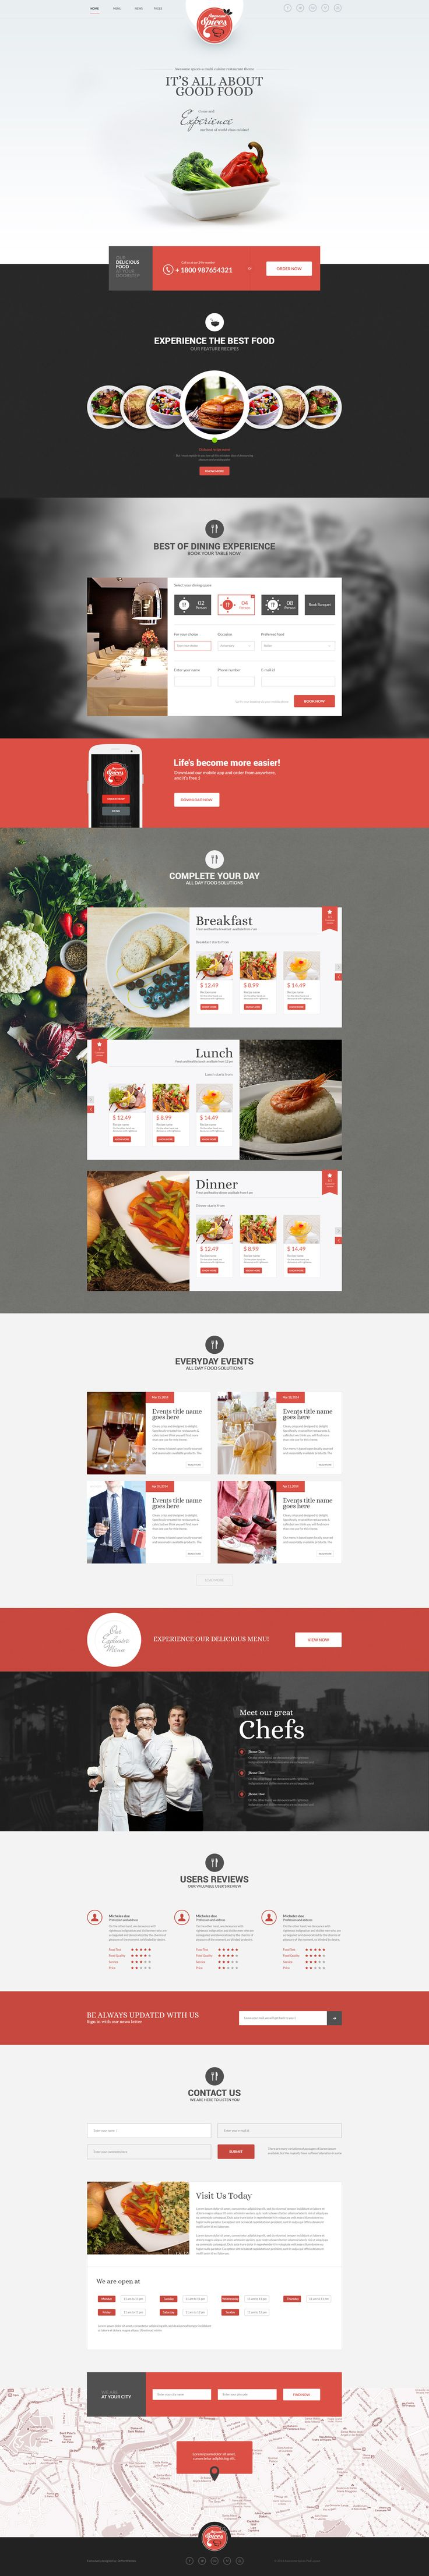 Awesome Spice-One Page Restaurant Theme - #webdesign #template